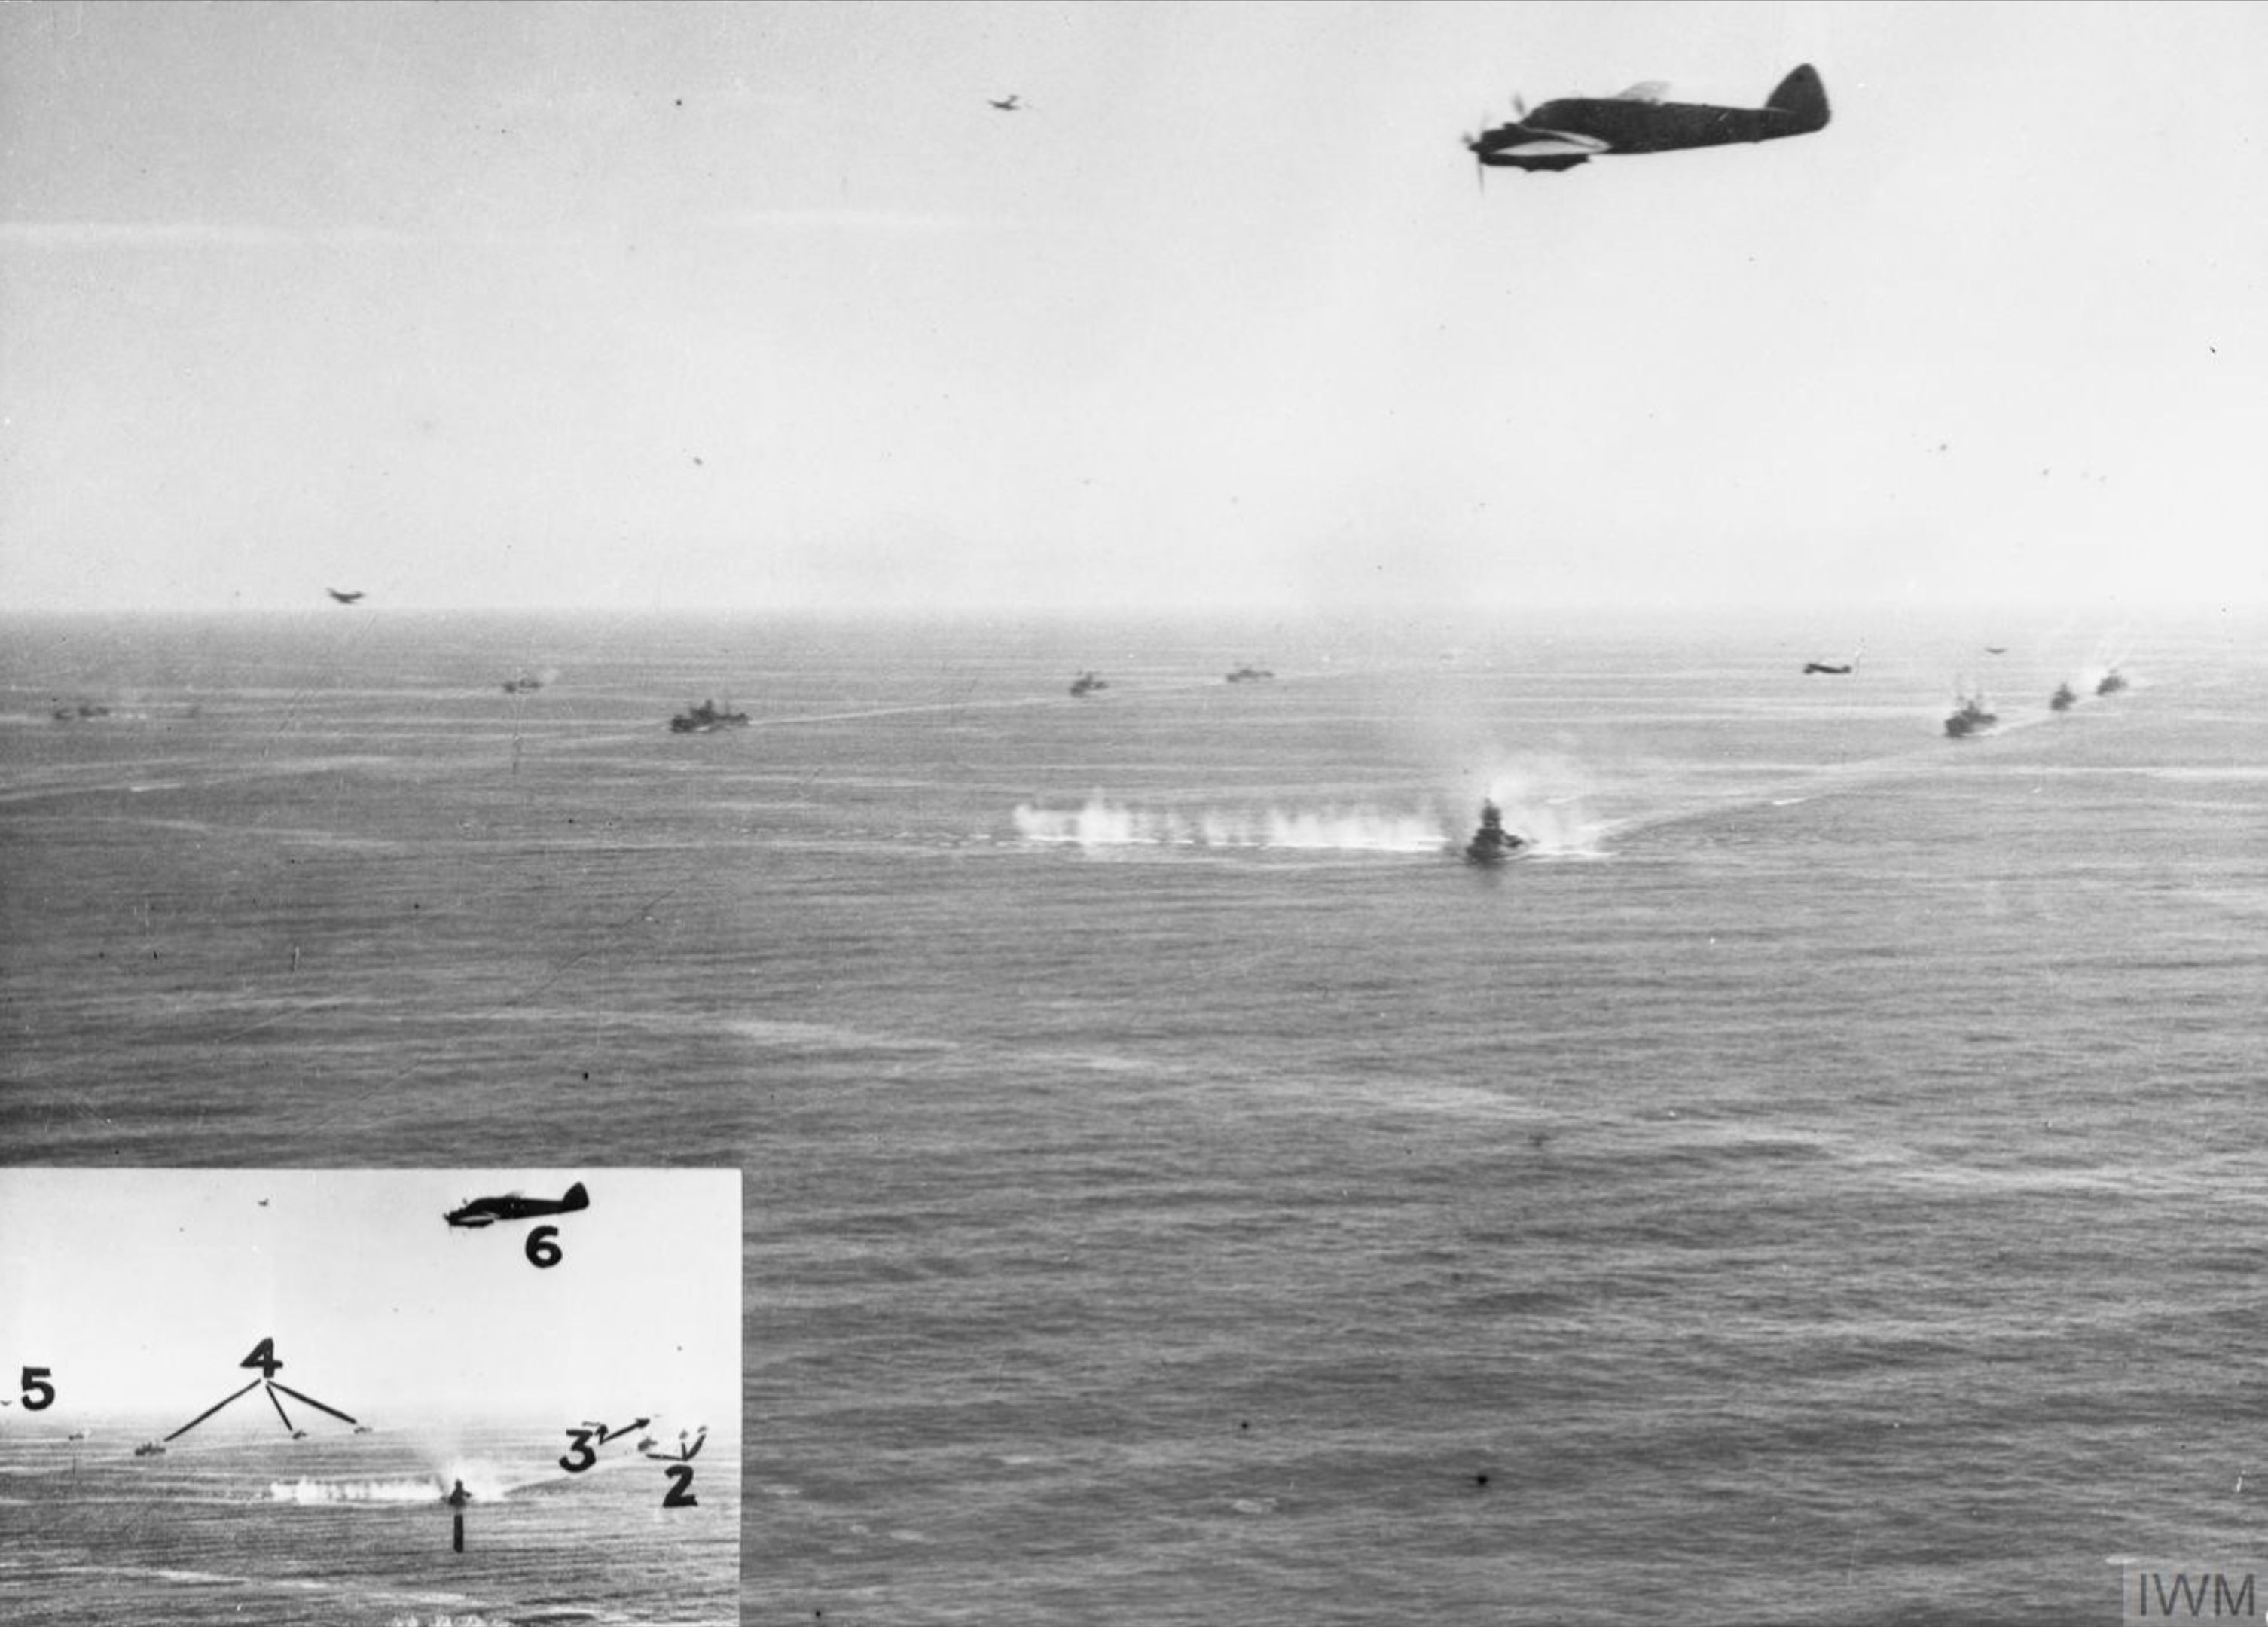 Beaufighters from North Coates Strike Wing attack on a convoy off Texel Holland IWM C3537